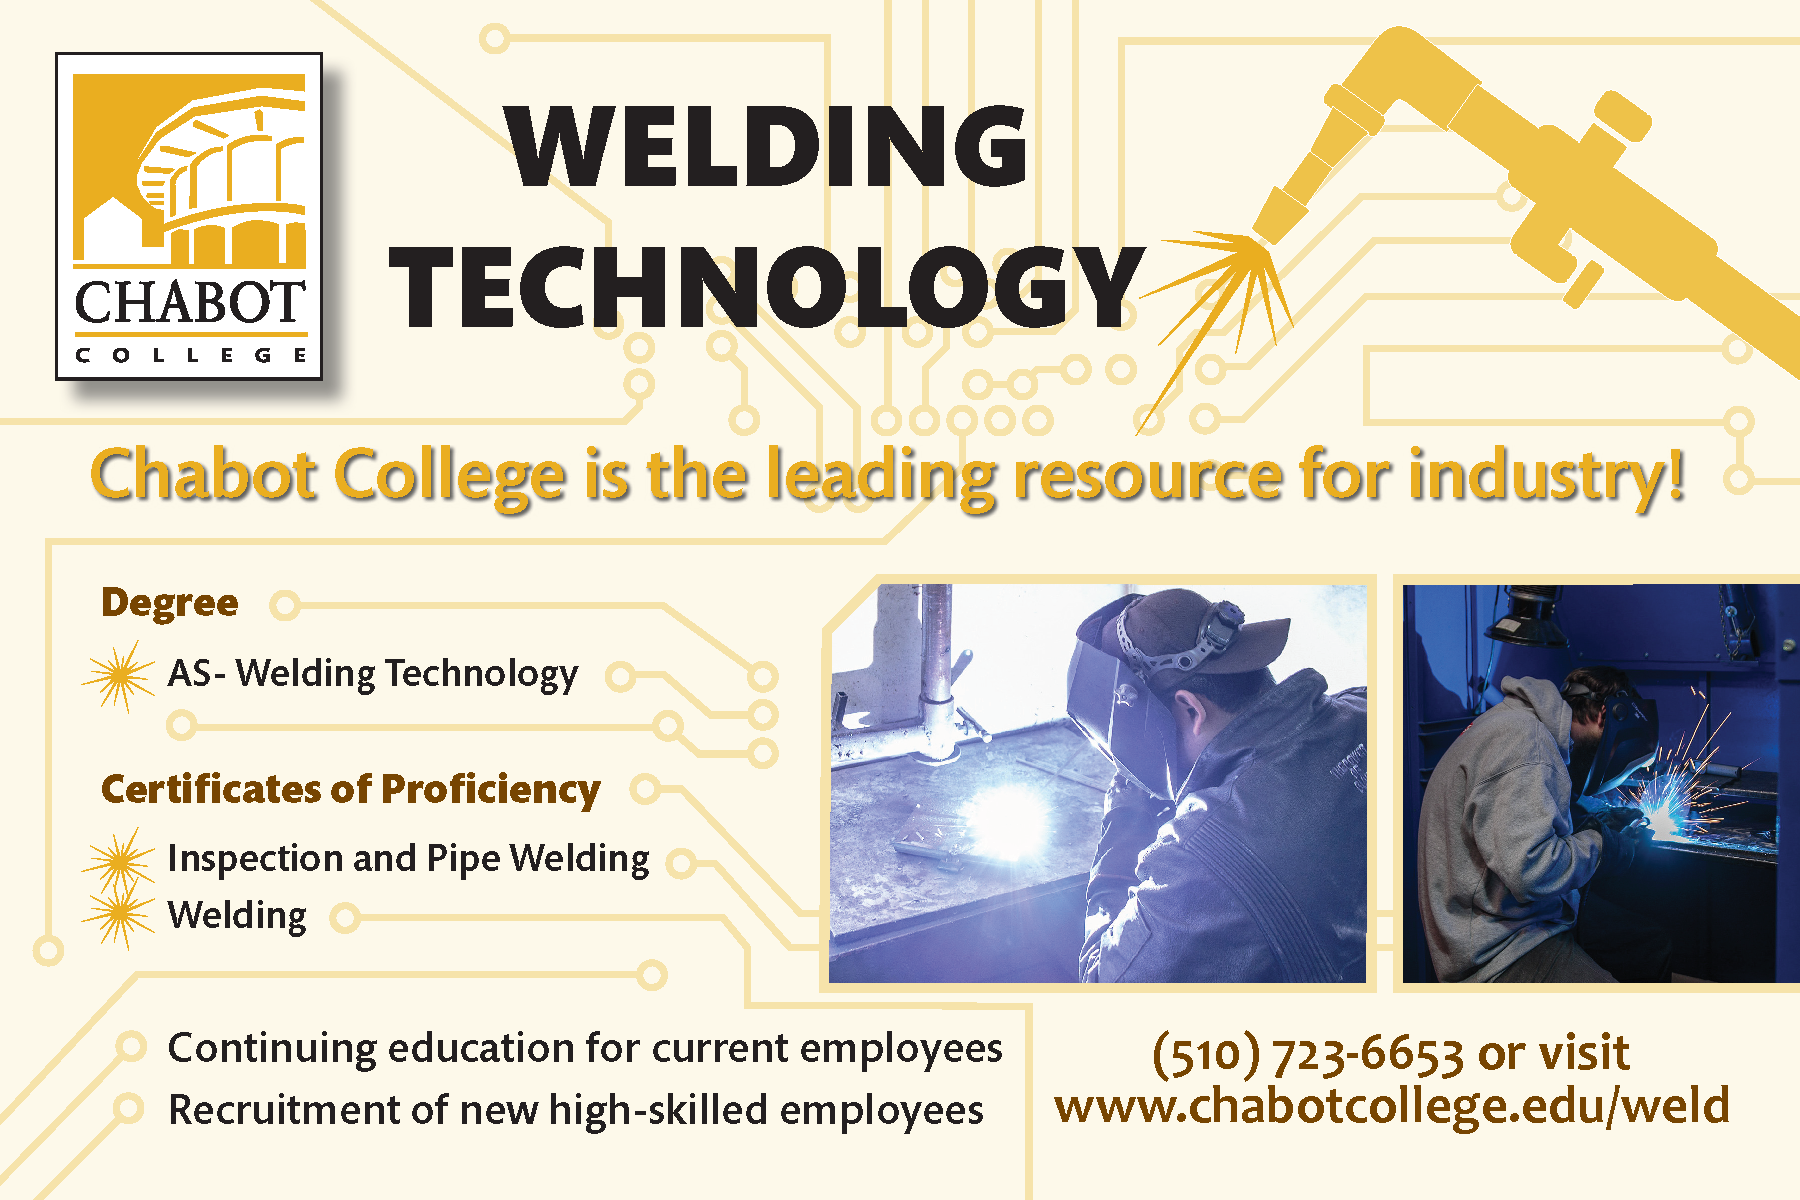 Chabot_Welding_Postcard_DRAFT_8.18.15_Page_1.png